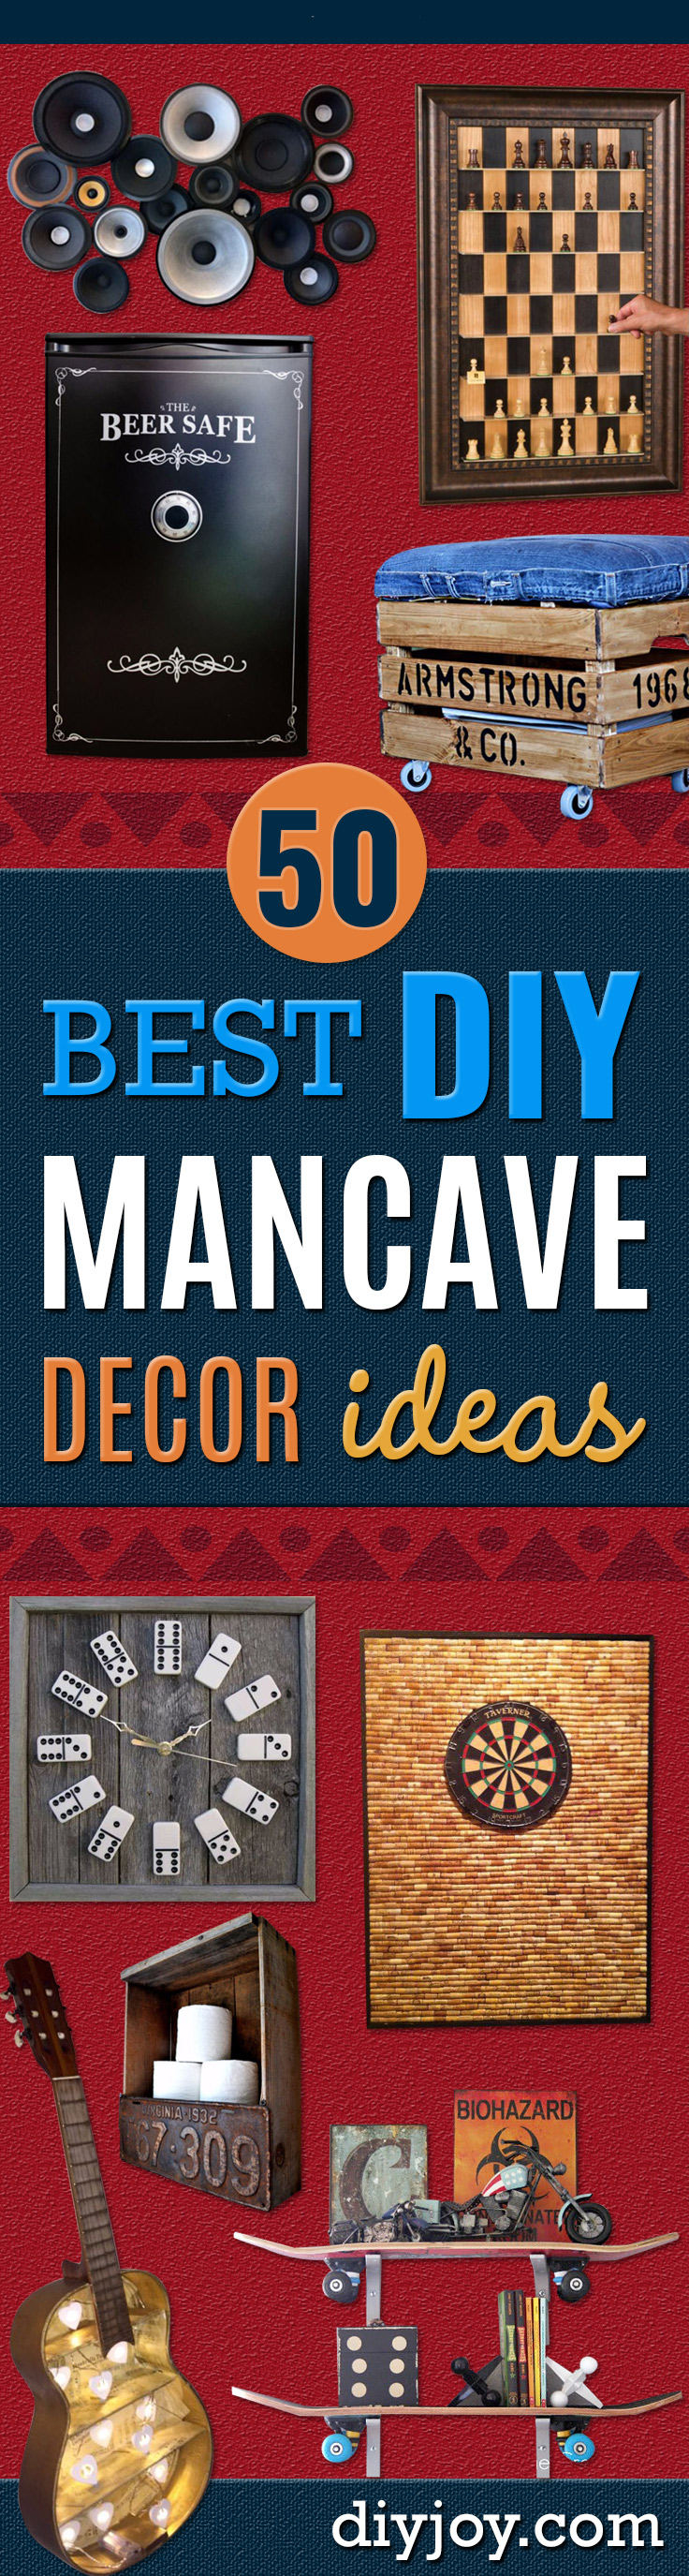 Diy Wall Art For Man Cave : Best diy mancave decor ideas joy